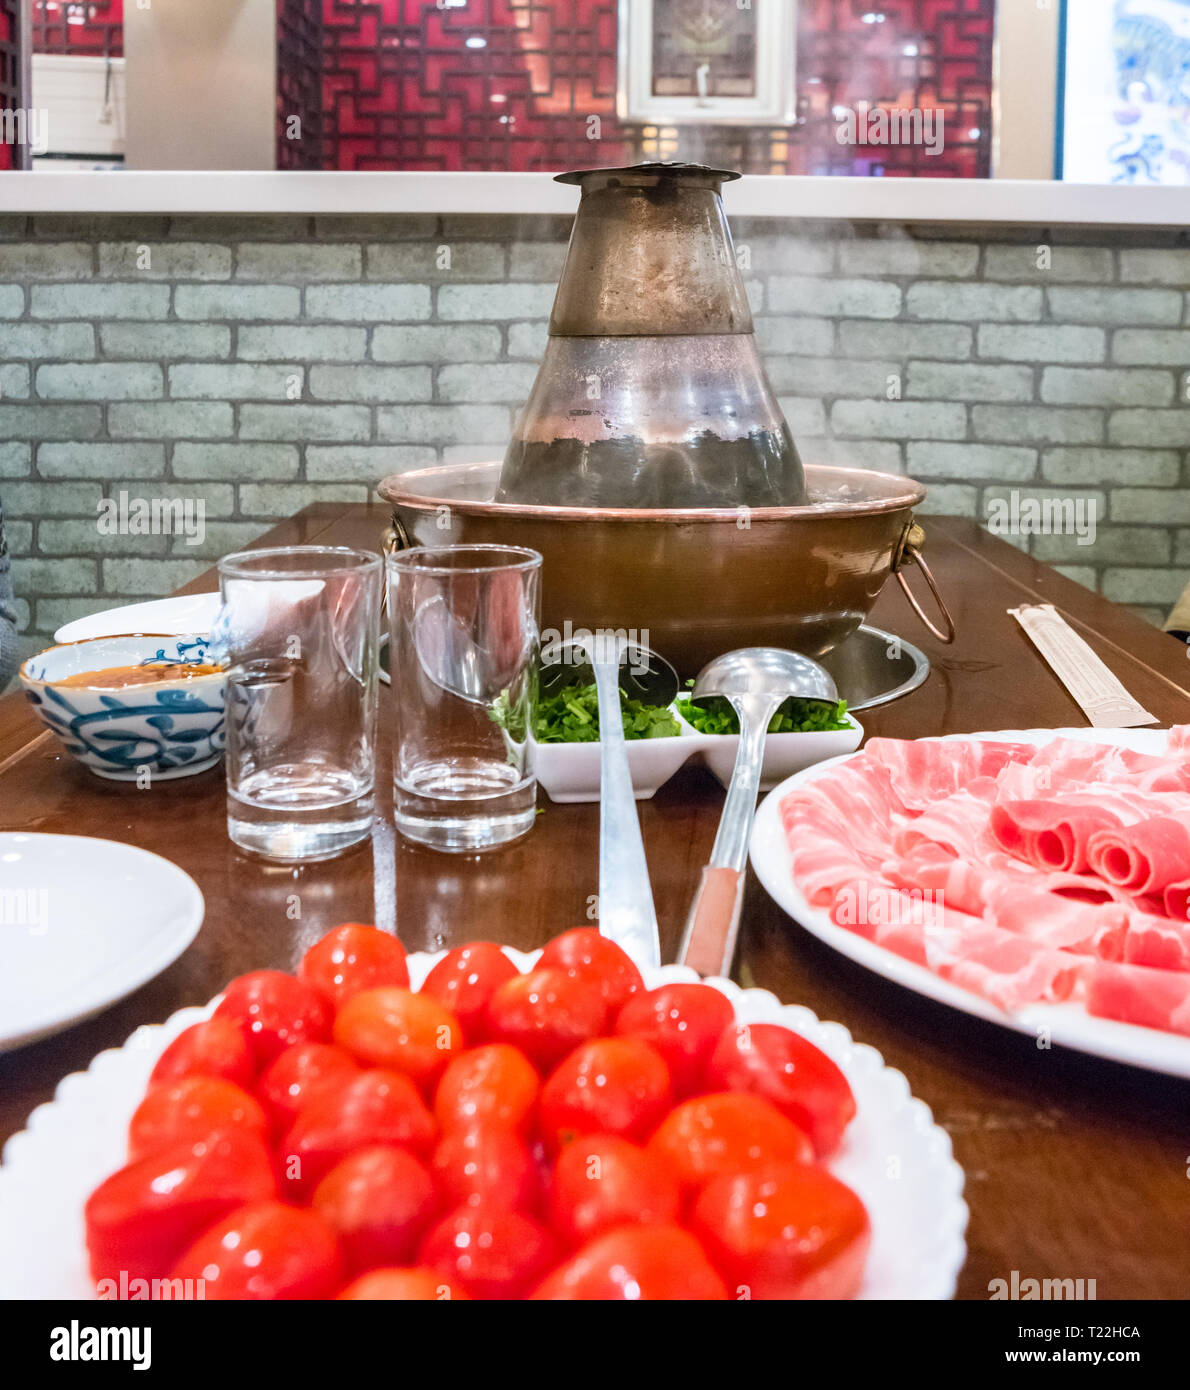 A traditional Chinese hotpot with meat and condiments. Food photography Stock Photo